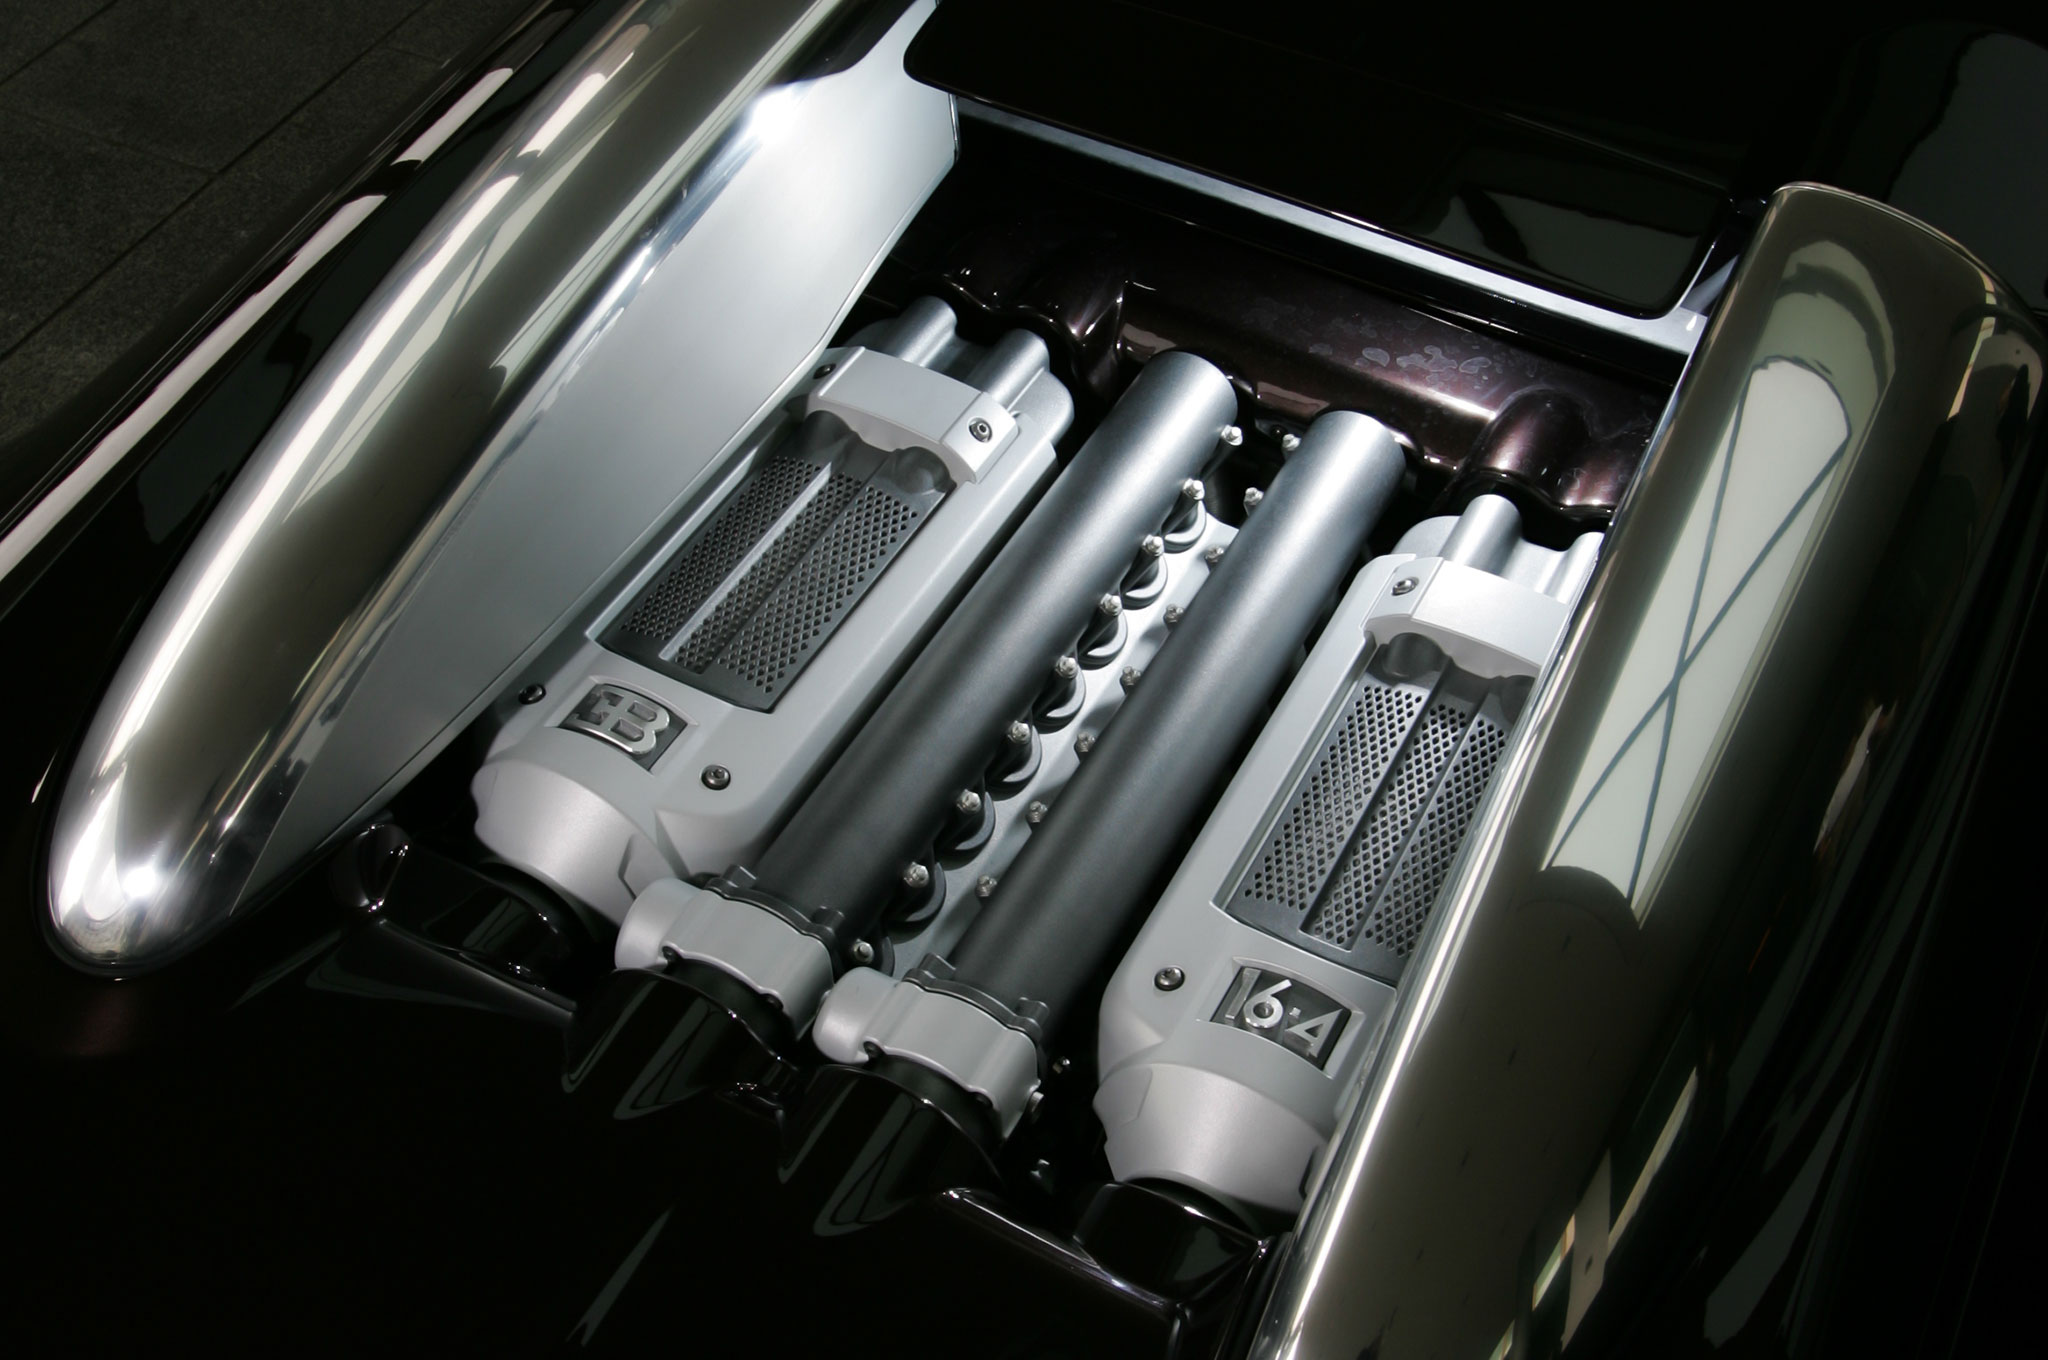 bugatti veyron engine specs 2018 bugatti veyron specs engine and review best toyota review blog. Black Bedroom Furniture Sets. Home Design Ideas